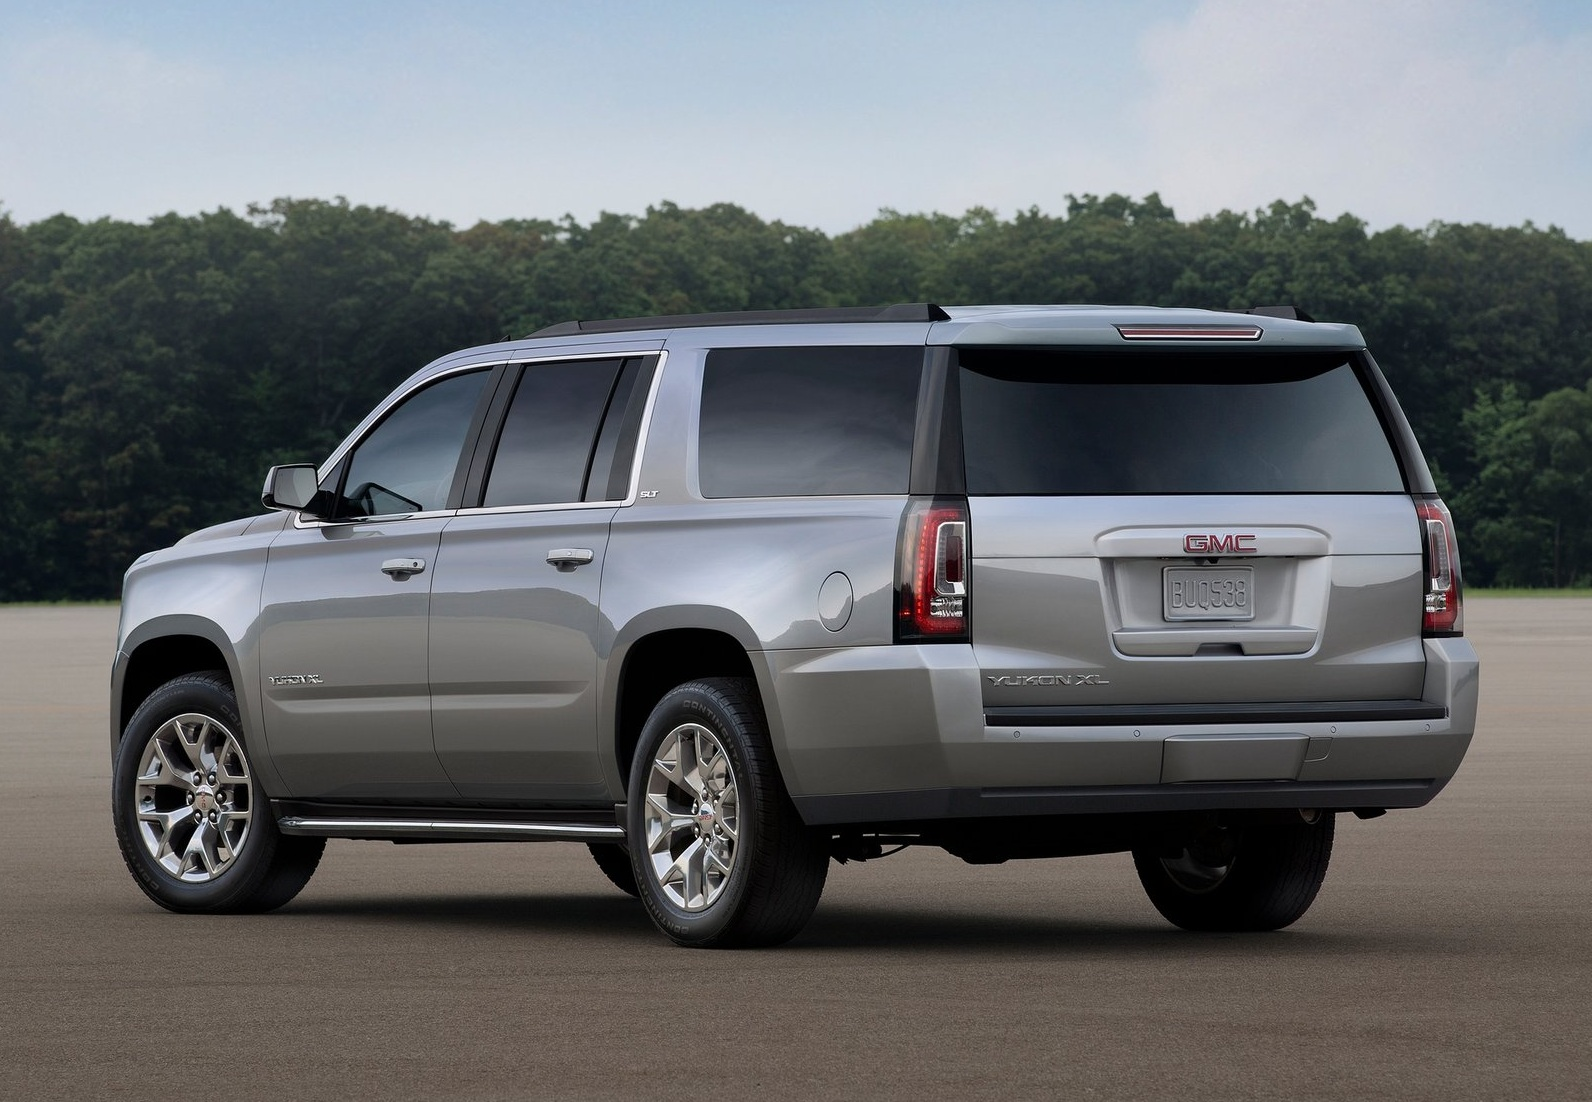 2015 Gmc Yukon Xl Rear Side Design (Photo 9 of 10)